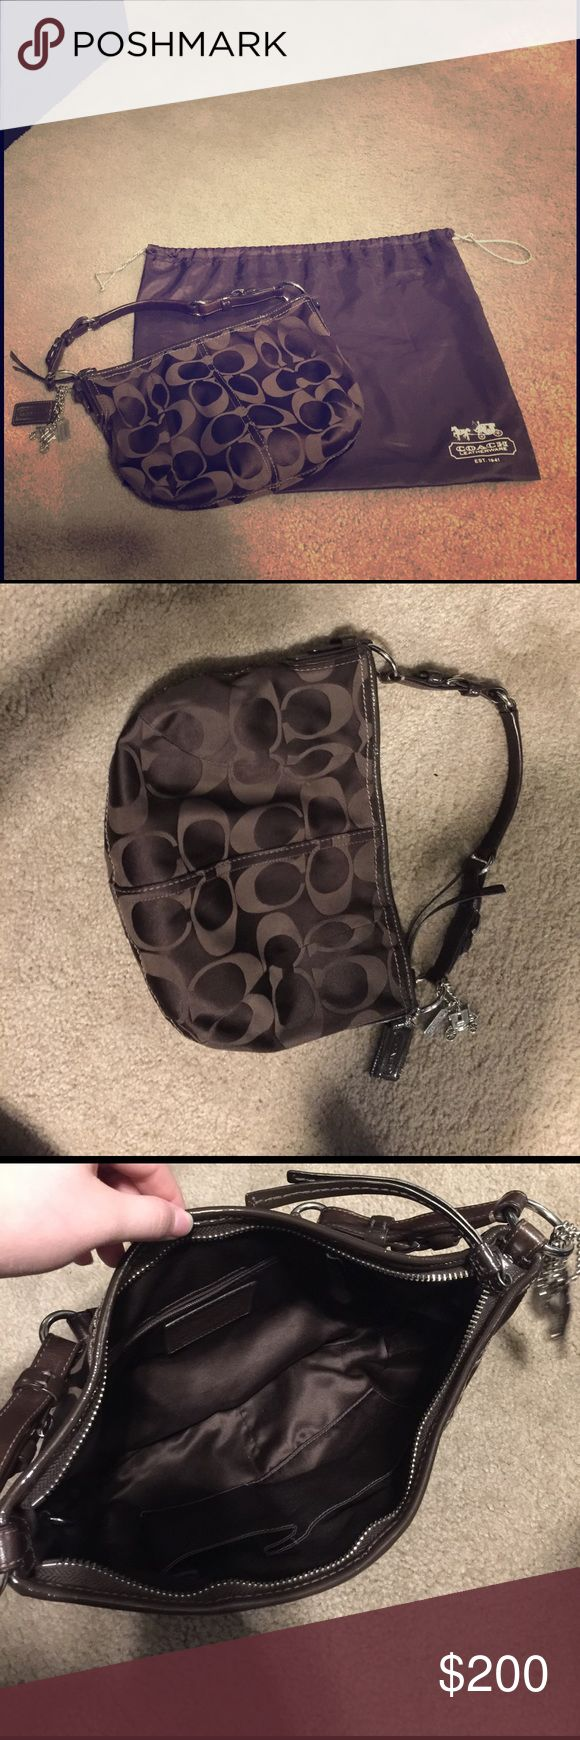 Coach brown Hobo bag Beautiful brown Coach hobo bag with gorgeous carriage bag charm.  Brown interior with minor signs of use. Comes with original dust bag Coach Bags Hobos